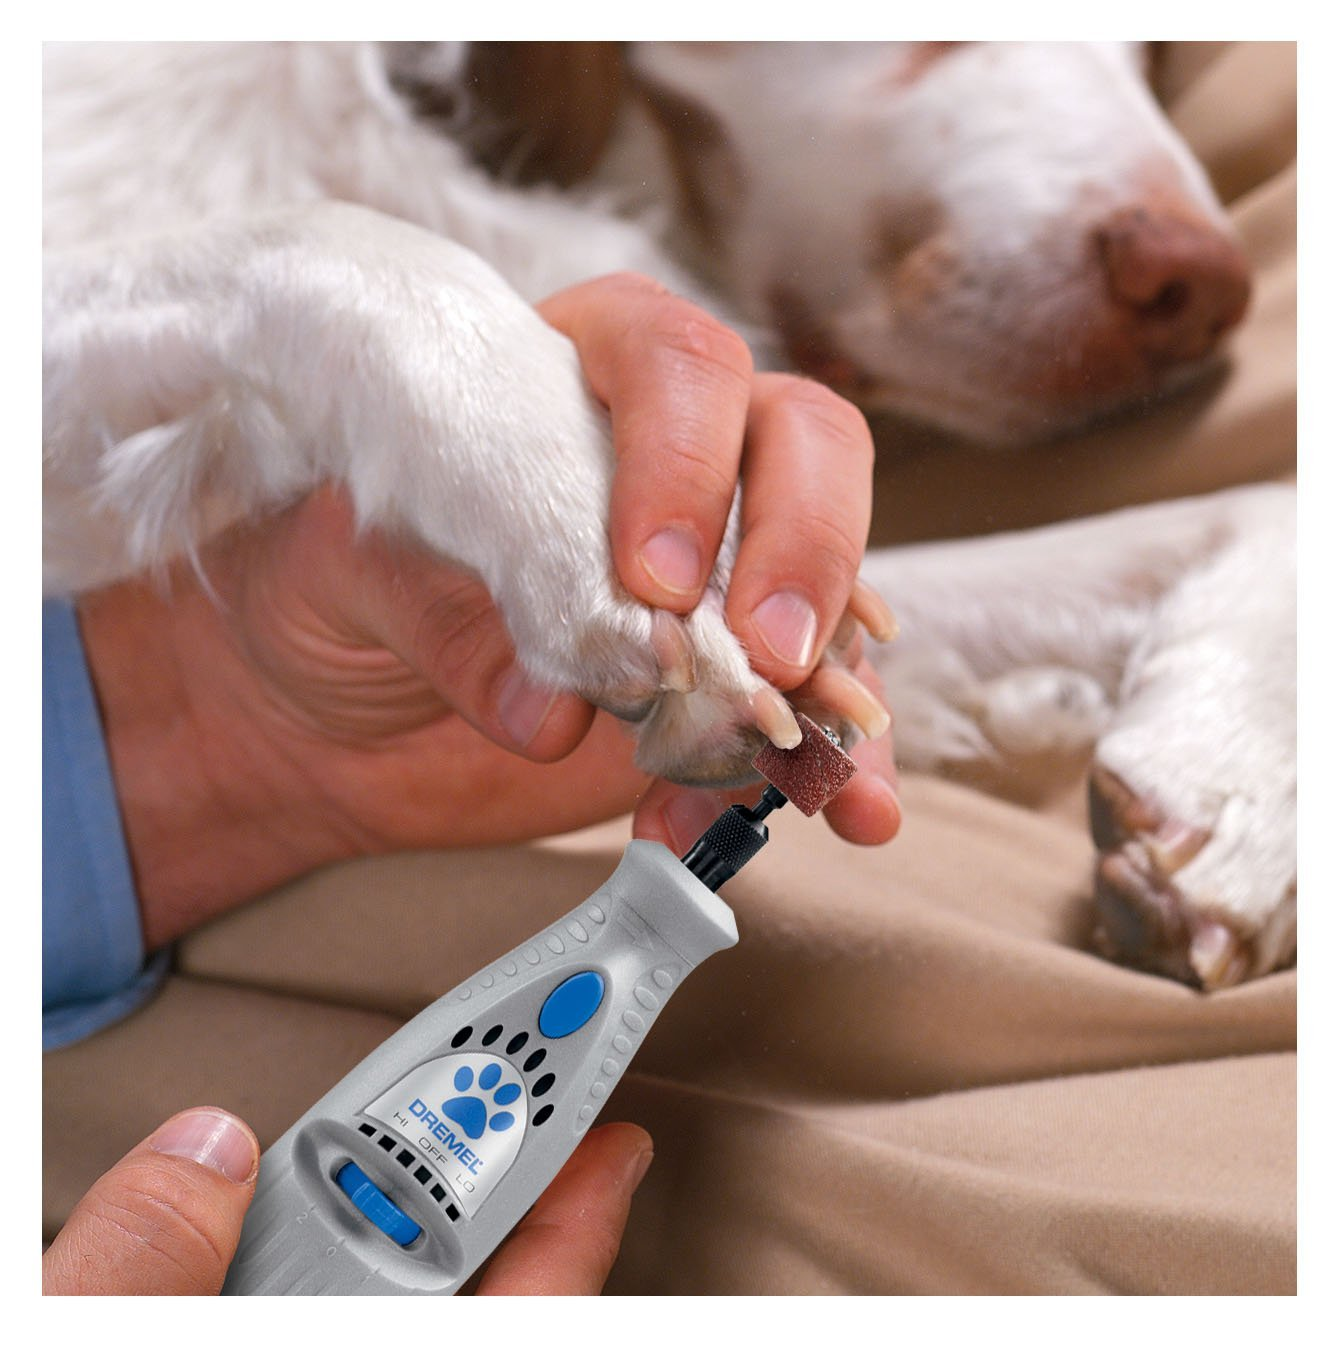 Enter for a chance to win the Dremel 7300-PT 4.8V Pet Nail Grooming Tool Giveaway Image